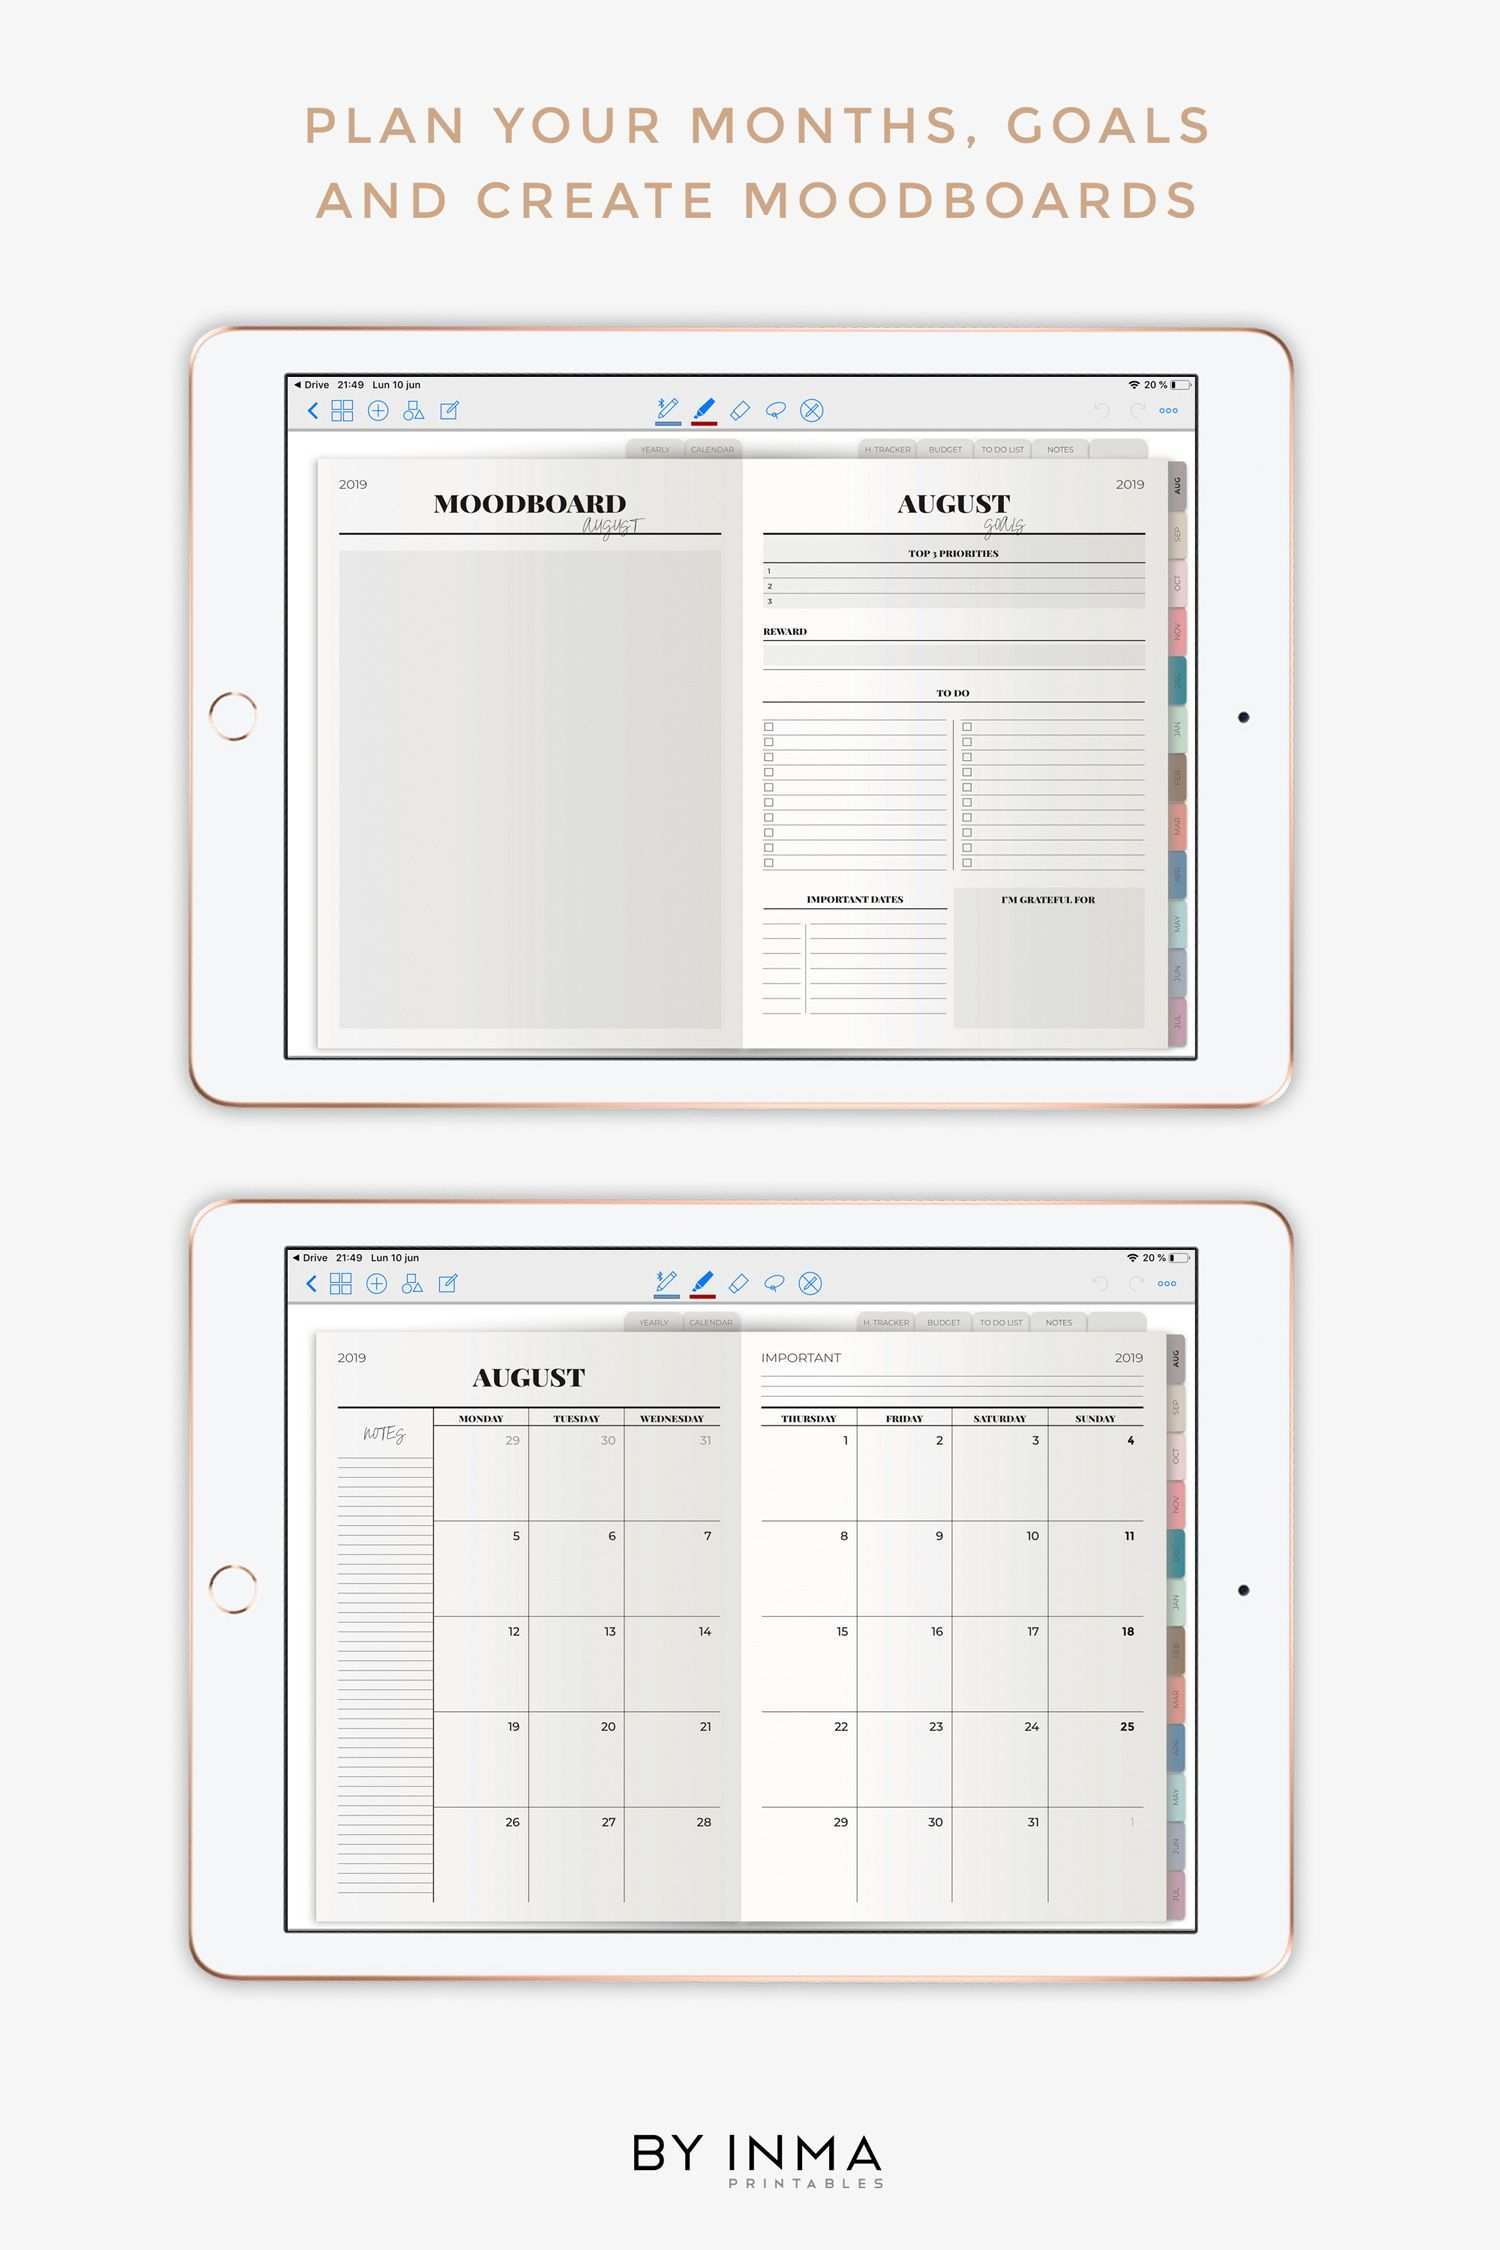 Digital Planner Goodnotes Ipad Pro 2020 Dated Weekly Planner With Hyperlinks Tabs Digital Stickers And Marble Cover Included Pdf Digital Planner Digital Sticker Weekly Planner